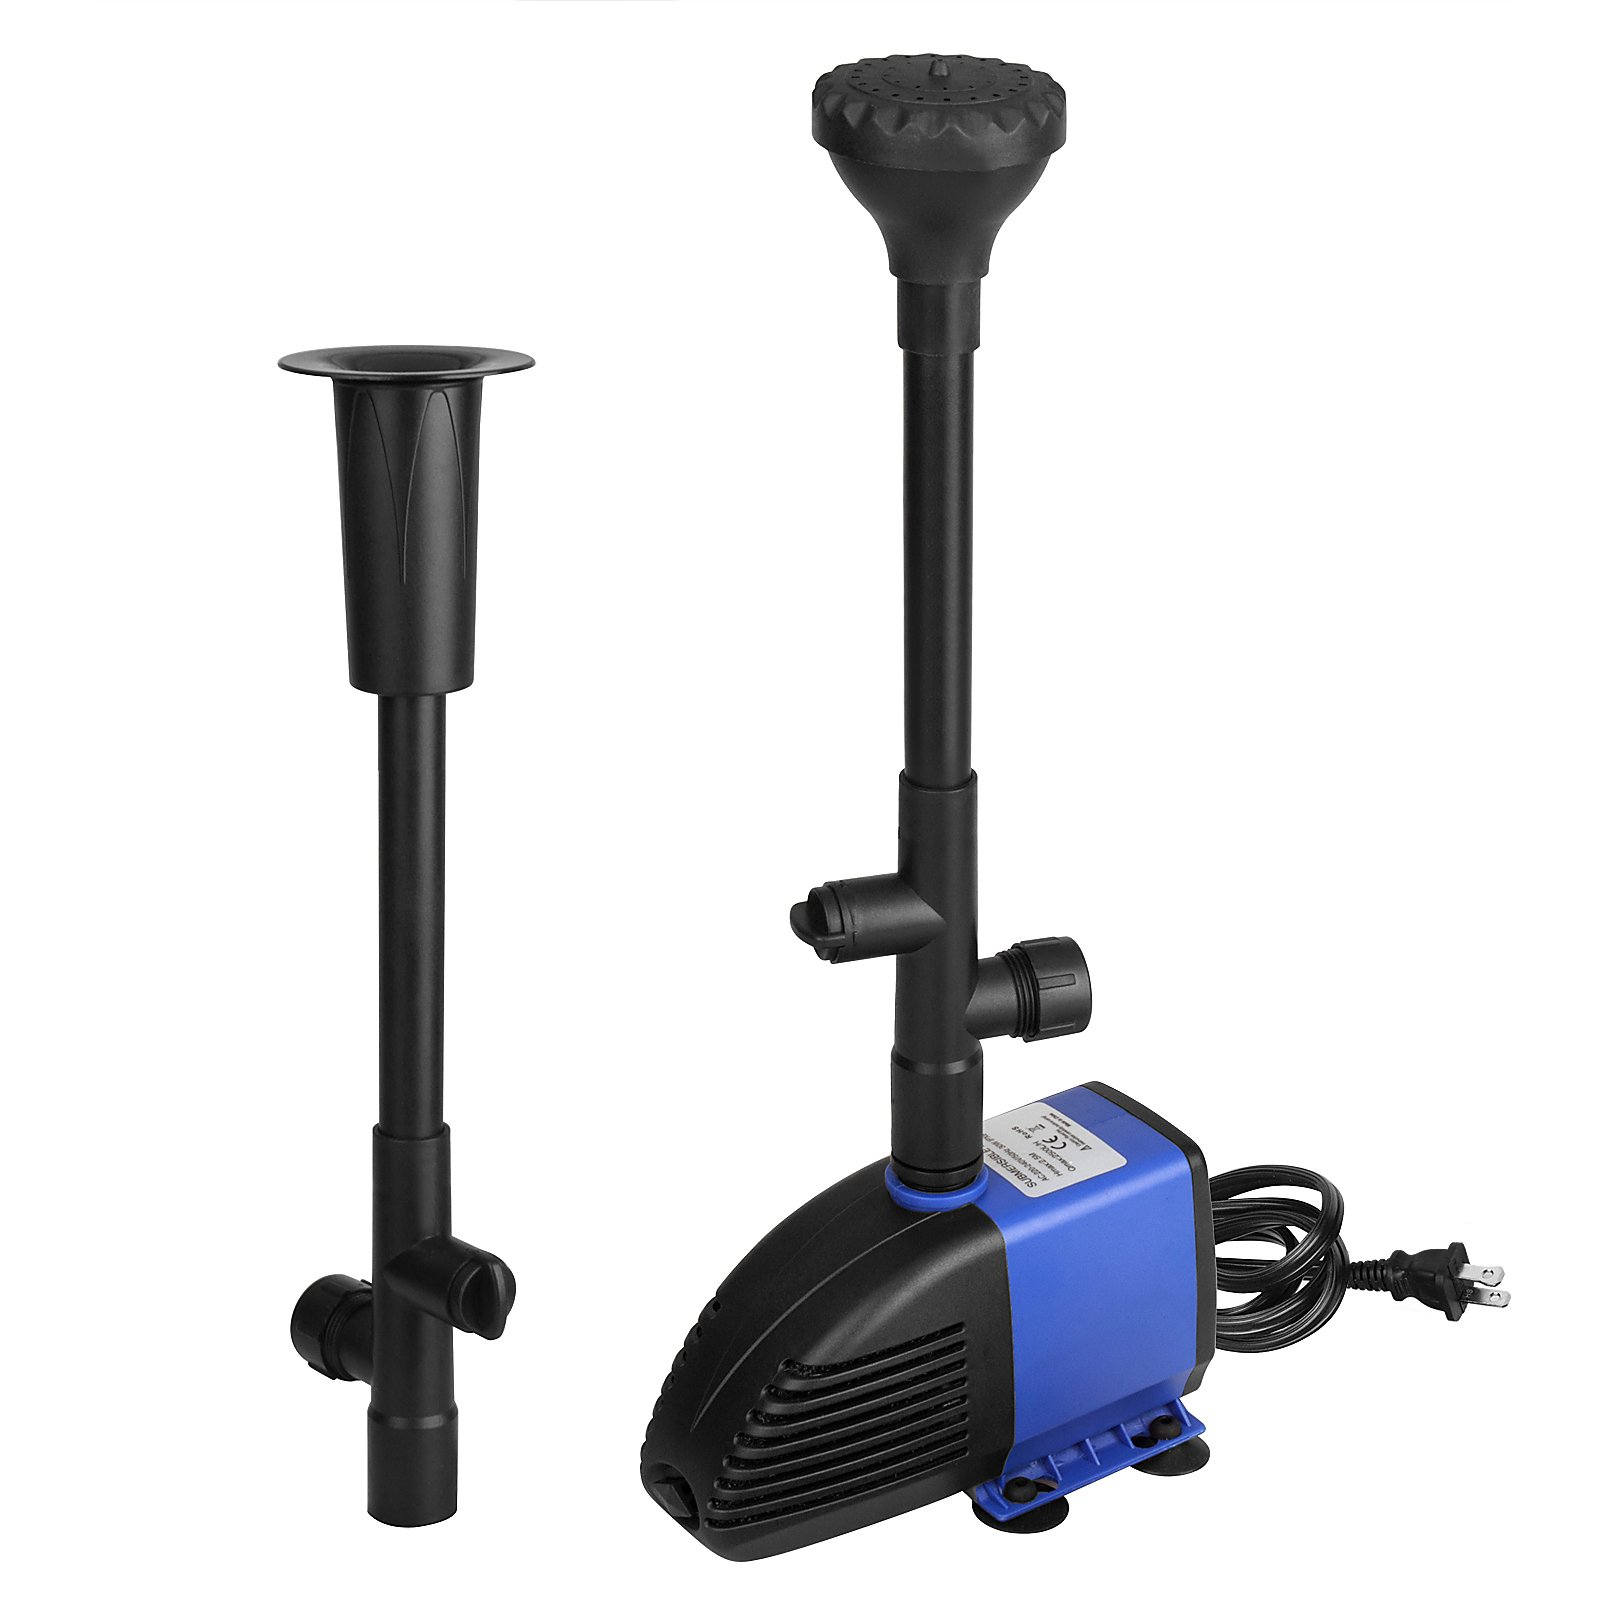 30W Oxygen Submersible Water Pump 2000L/H Water Fountain Aquarium 4m High Lift, Fountain Pump with 1.4m Power Cord for Pond Fish Tank with two nozzle 2 Water Patterns